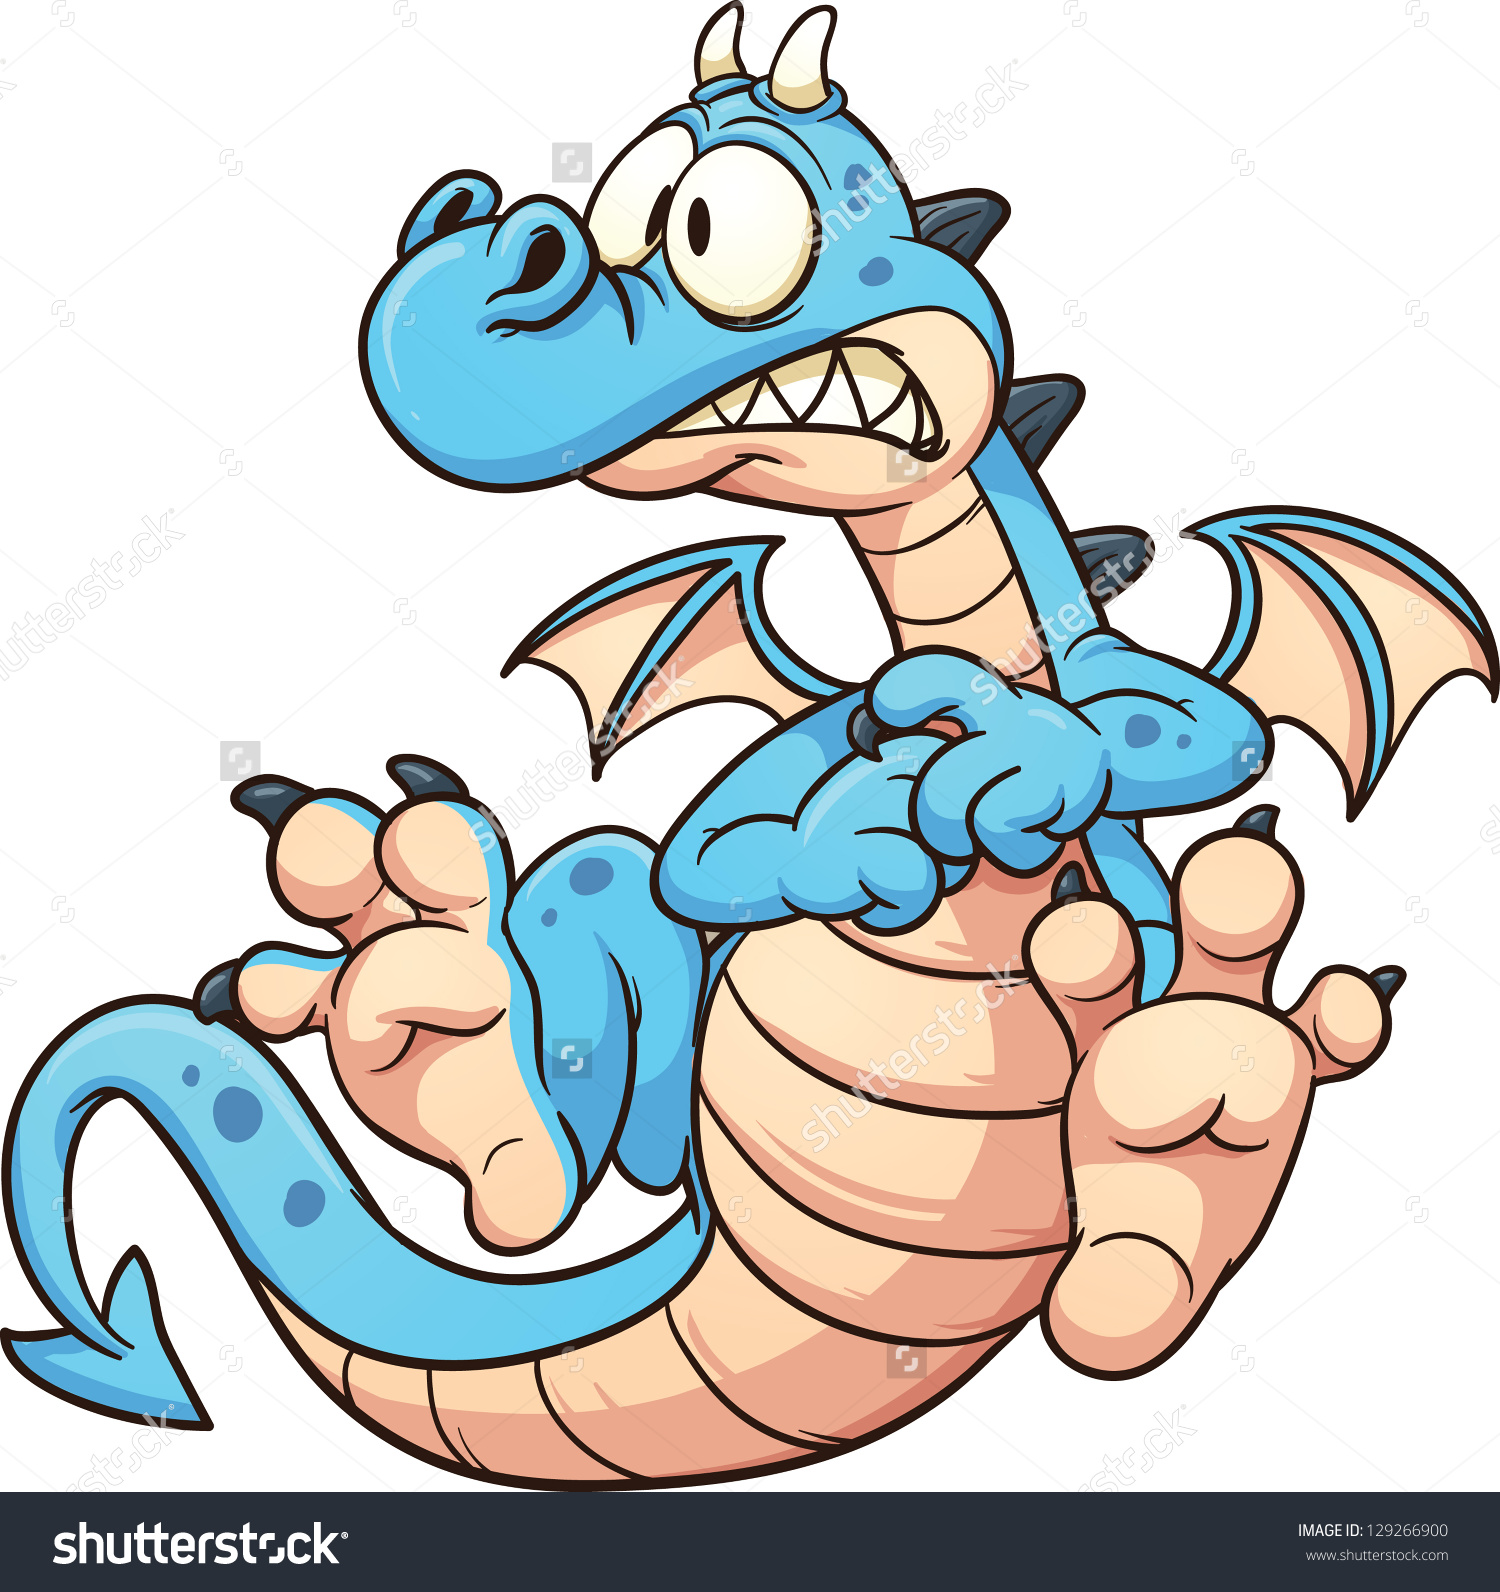 Blue Dragon clipart #1, Download drawings